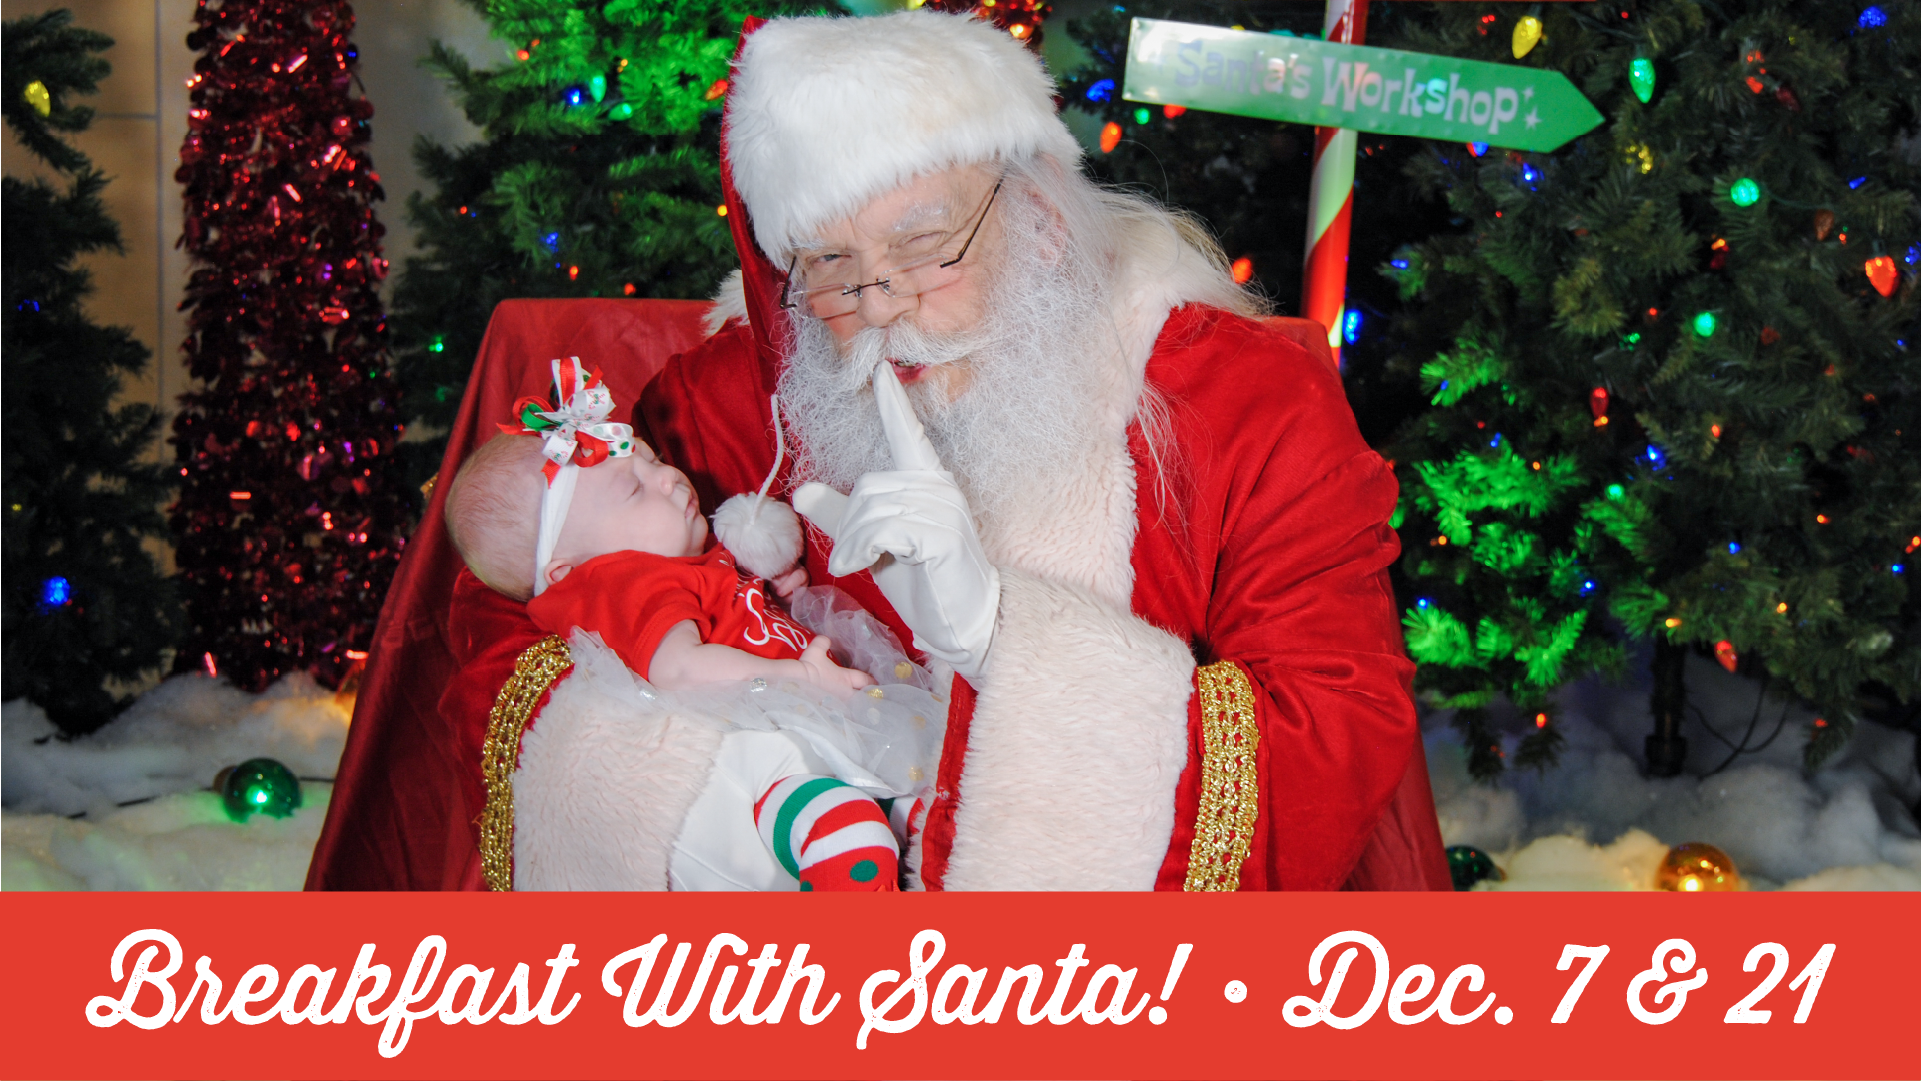 Breakfast with Santa Pictures in Biloxi